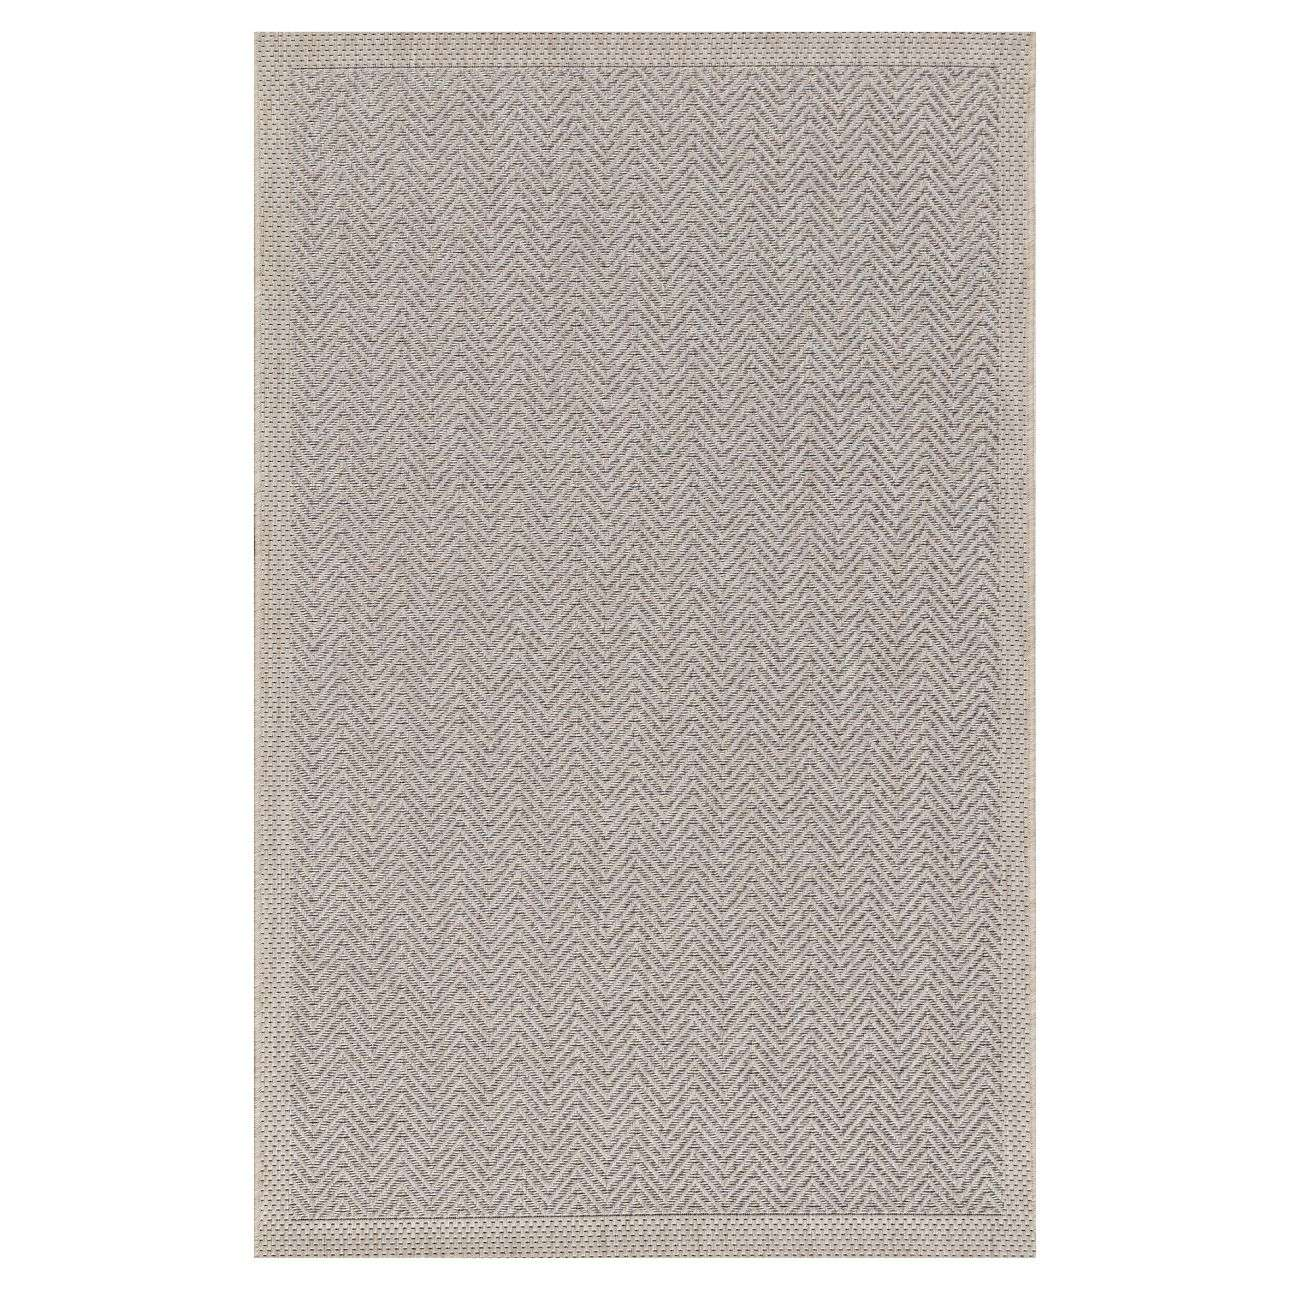 Breeze Sand/Cliff Grey Area Rug 120x170cm